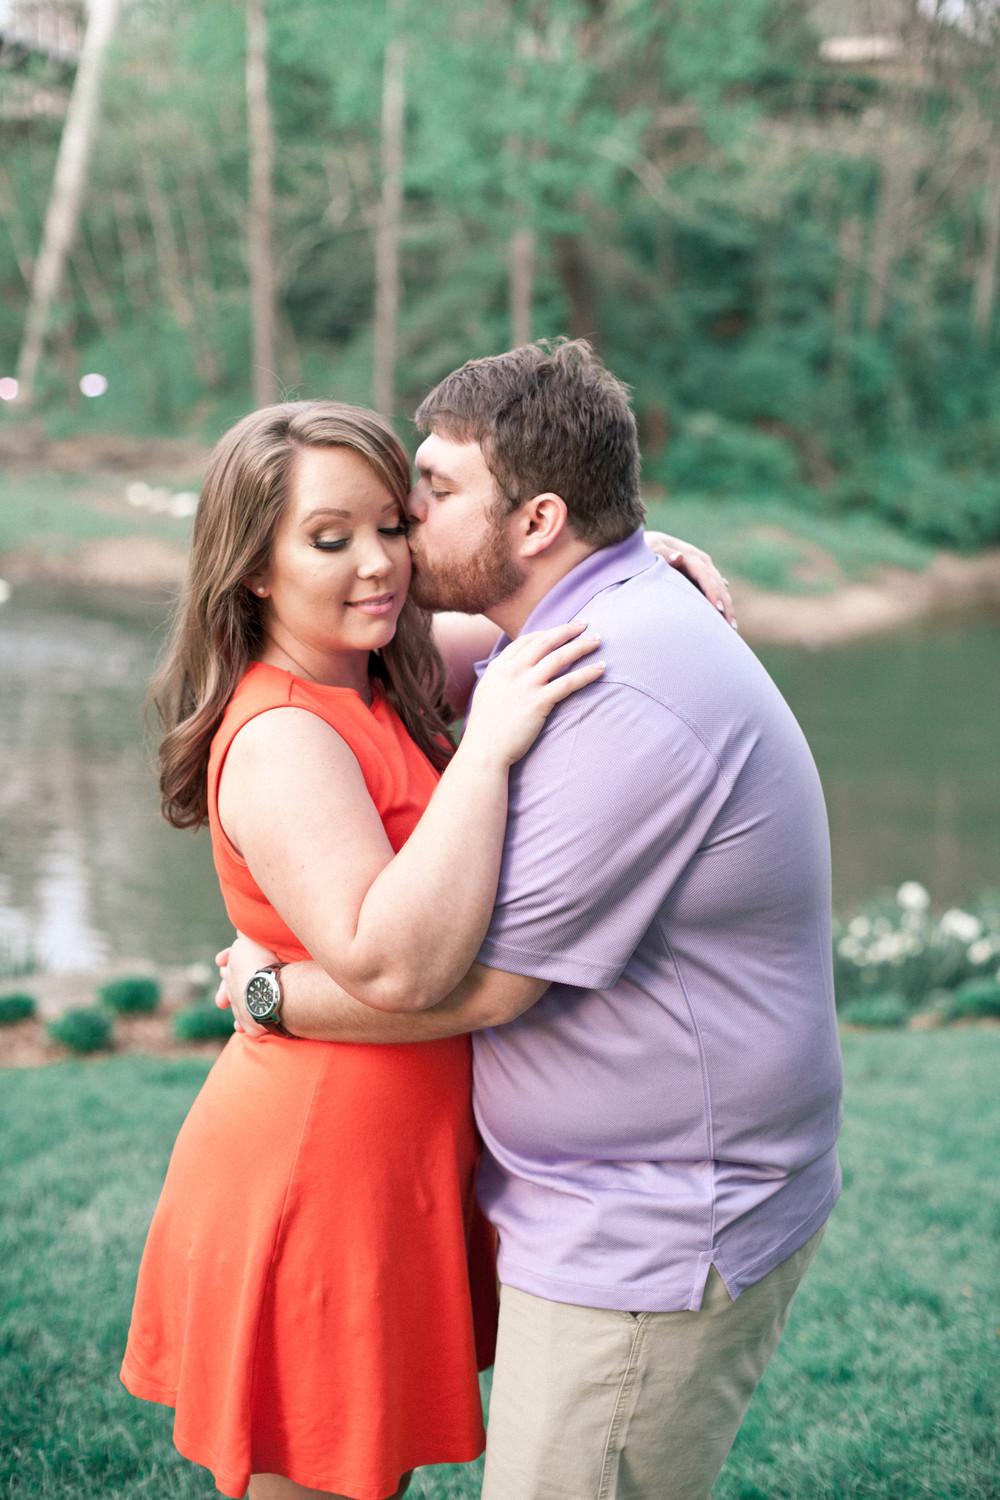 zach_gabbie_engagement_poured_out_photography-46.jpg